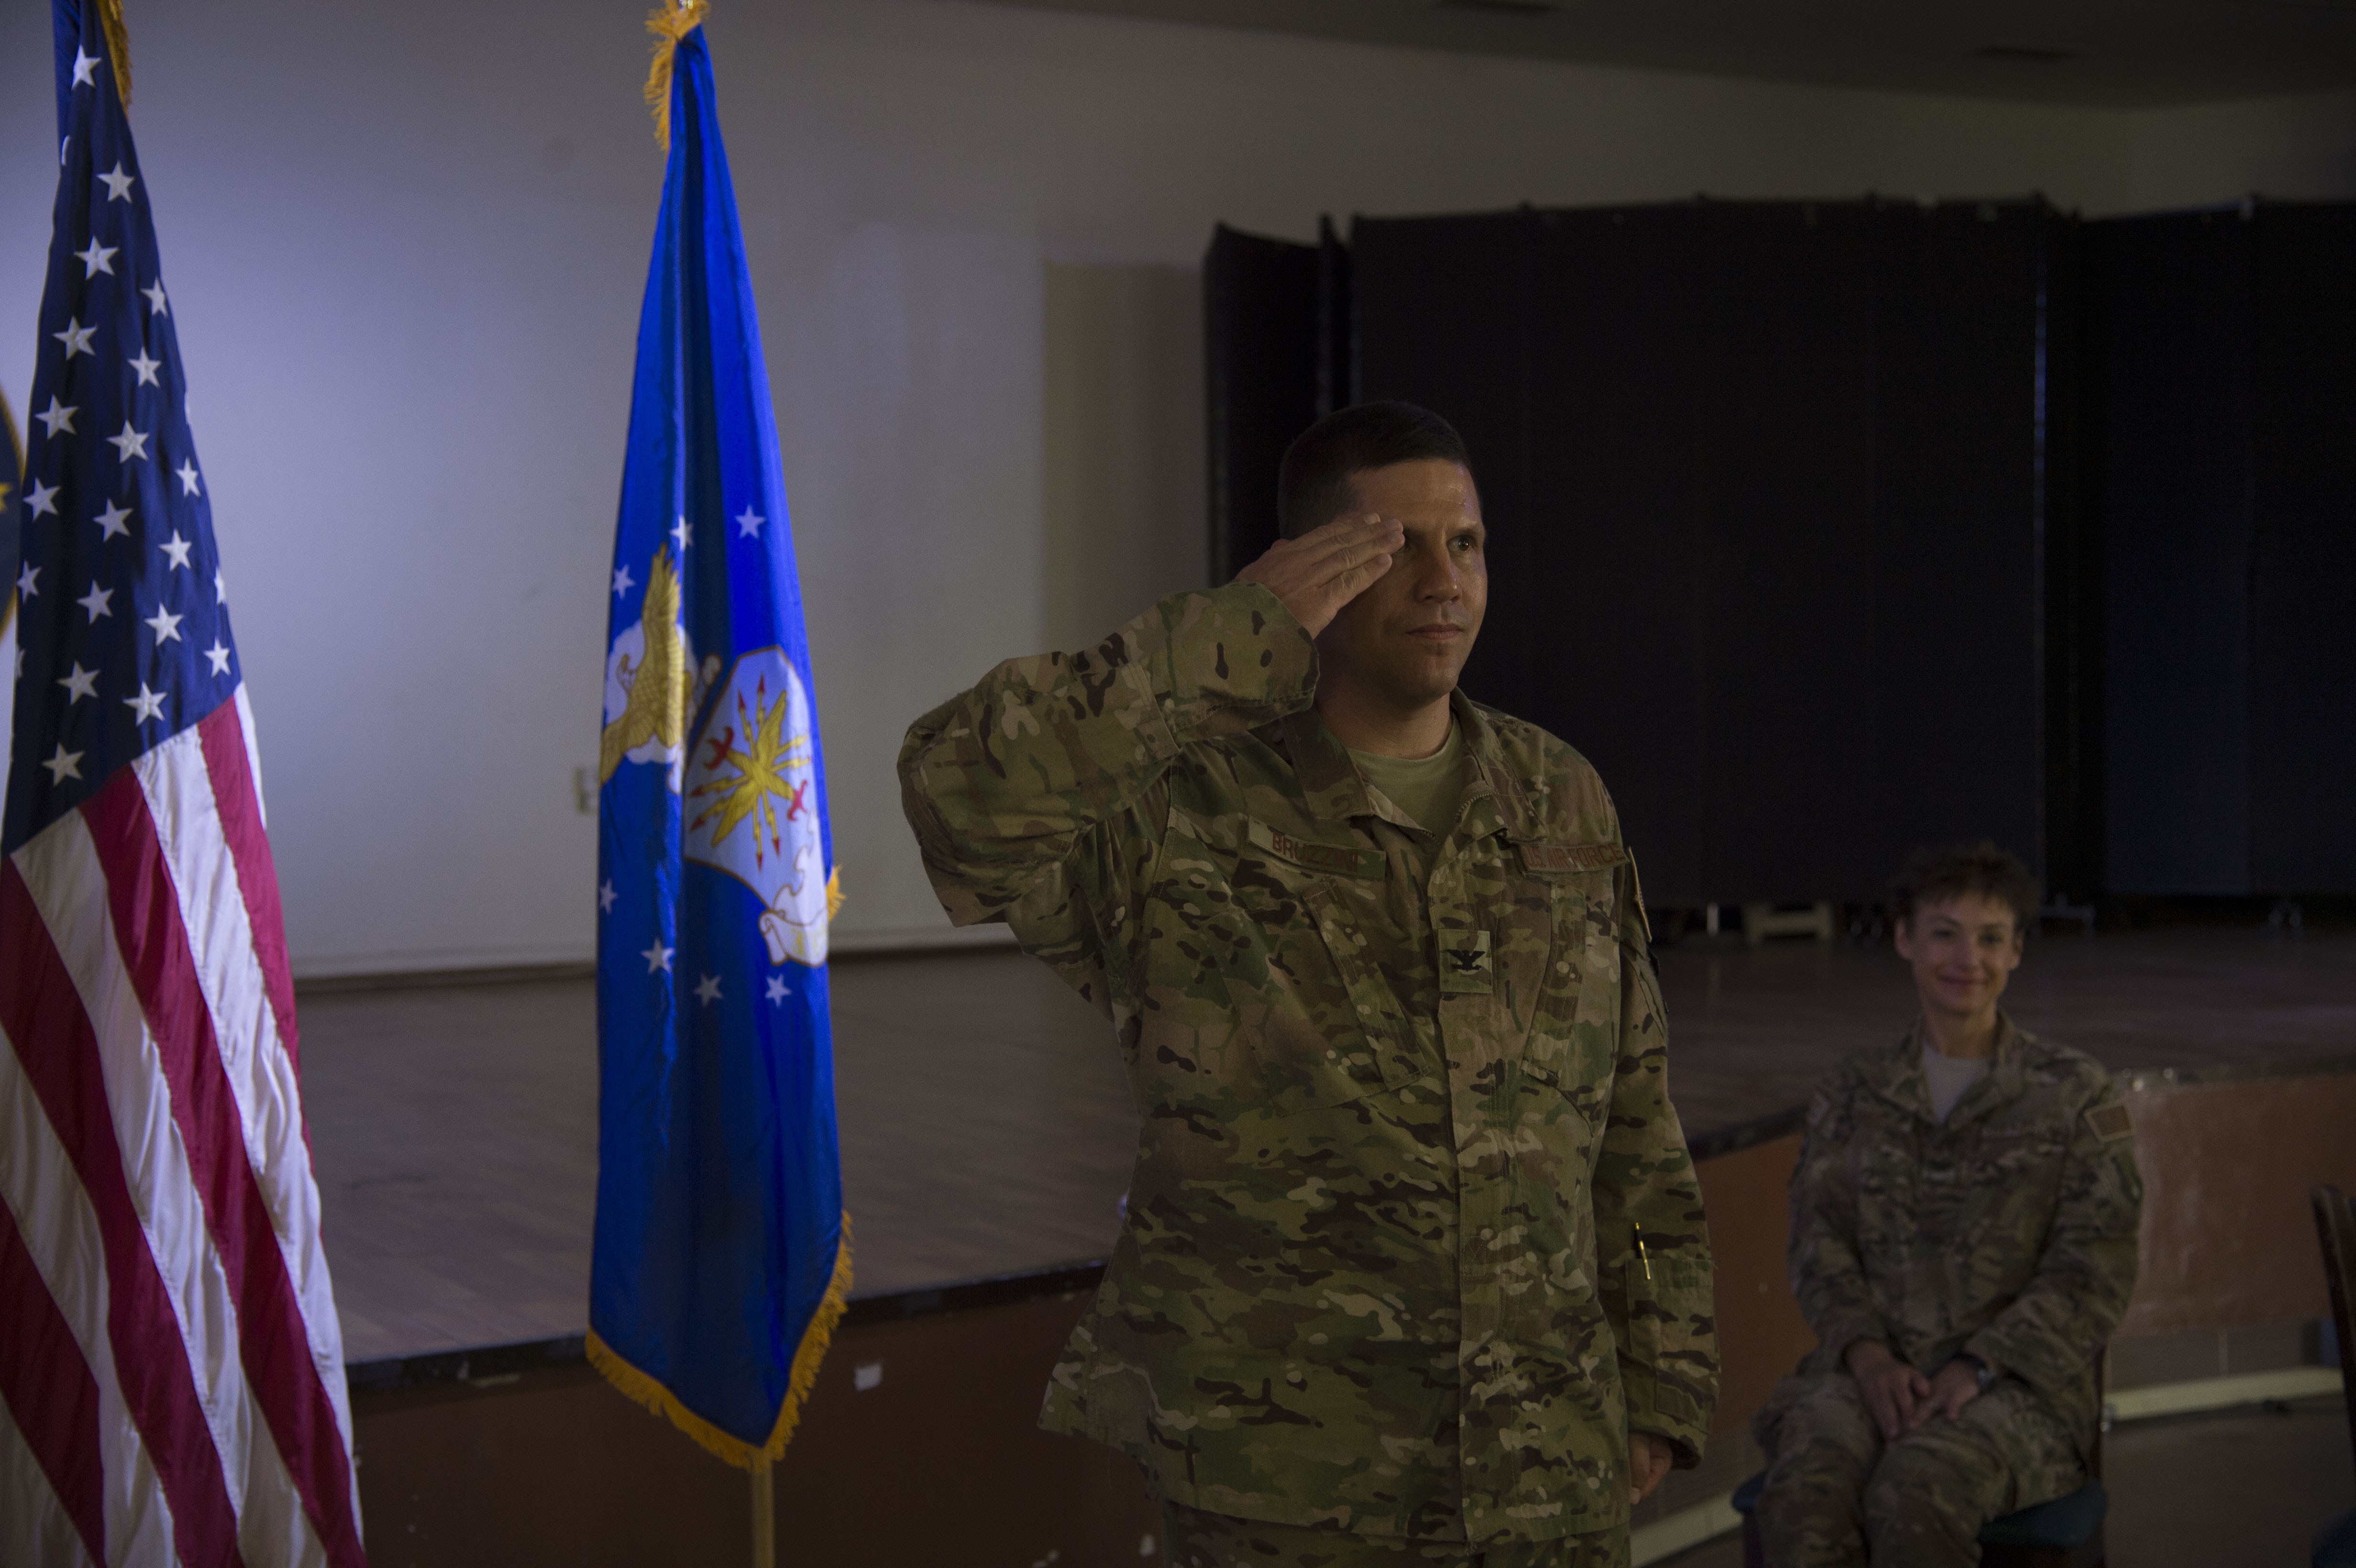 U.S. Air Force Col. Michael Bruzzini, 449th Air Expeditionary Group incoming commander, presents his first salute to the unit during the 449th AEG Change of Command ceremony June 6, 2016, at Camp Lemonnier, Djibouti. Bruzzini has experience in combat and combat support missions in Operations Allied Force, Southern Watch, Iraqi Freedom and Enduring Freedom, as well as experience in the Horn of Africa. (U.S. Air Force photo by Staff Sgt. Eric Summers Jr.)